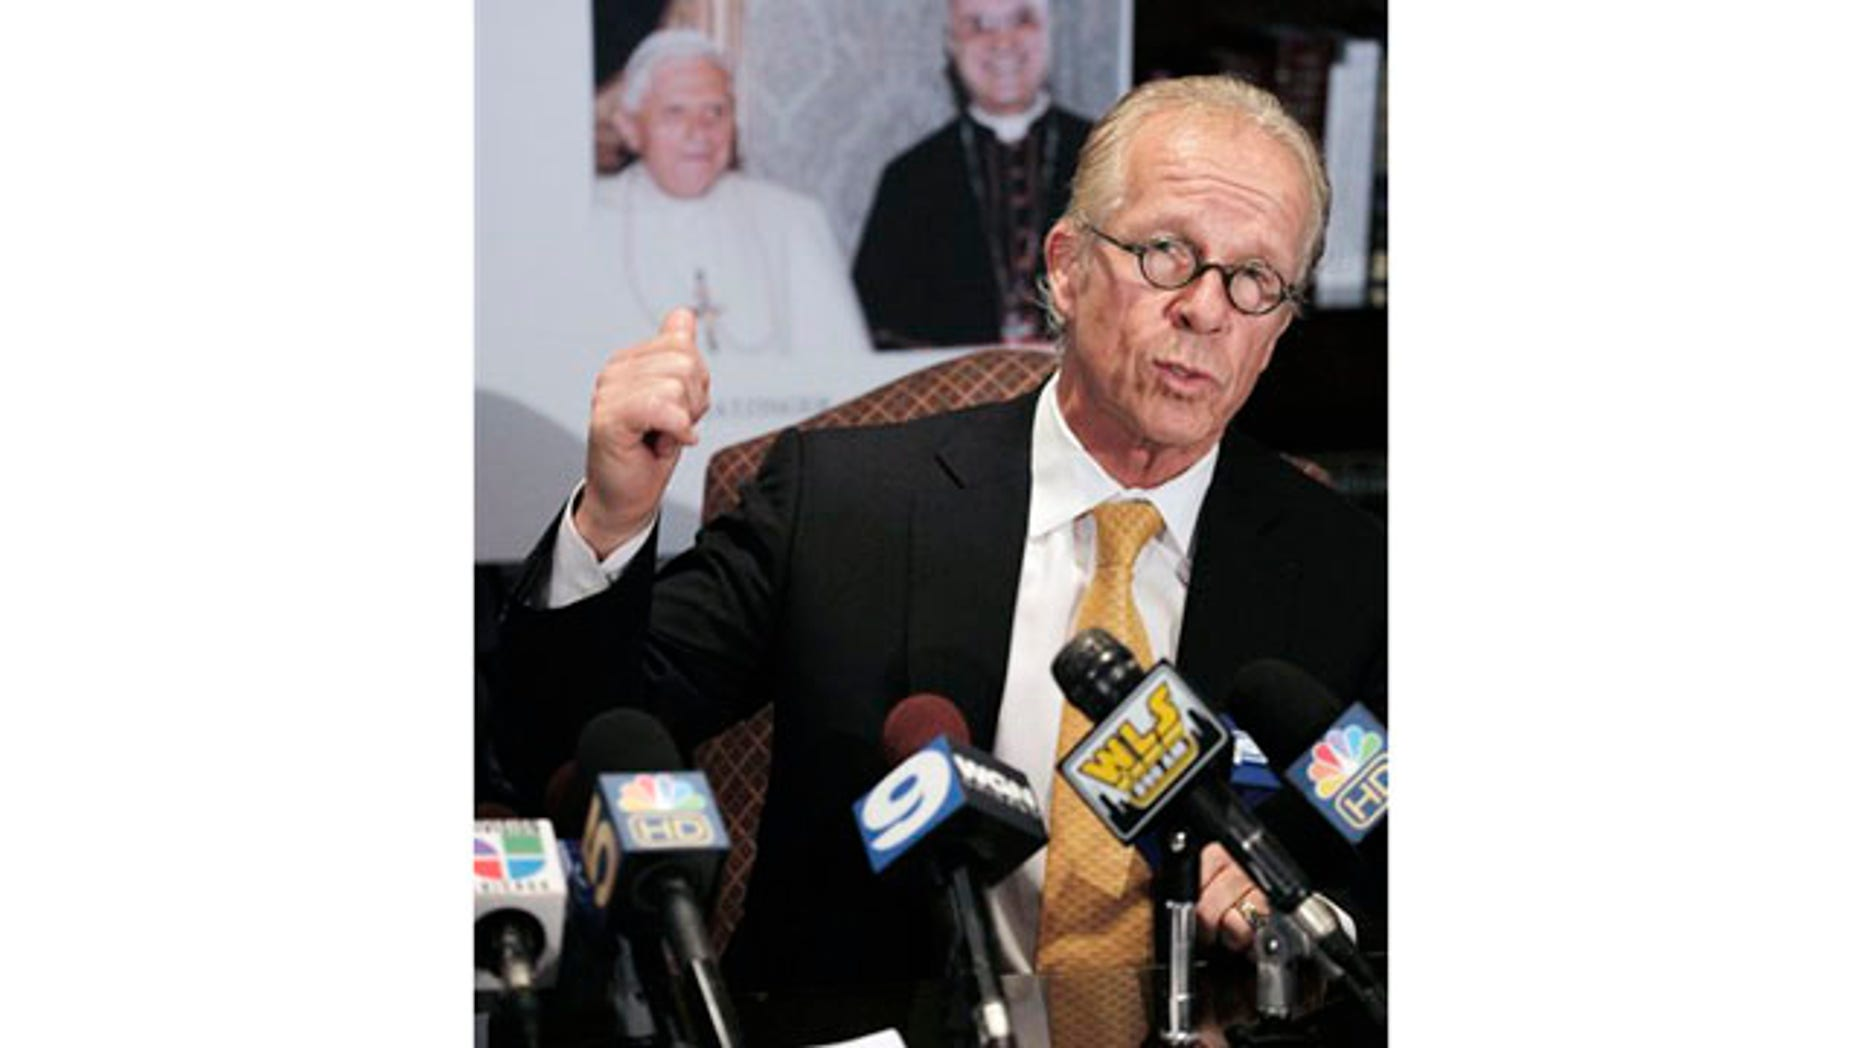 May 11: Attorney Jeff Anderson speaks at a news conference in Chicago about a lawsuit he filed suing the Vatican on behalf of a woman whose son was sexually abused by Chicago priest Father Daniel McCormack.